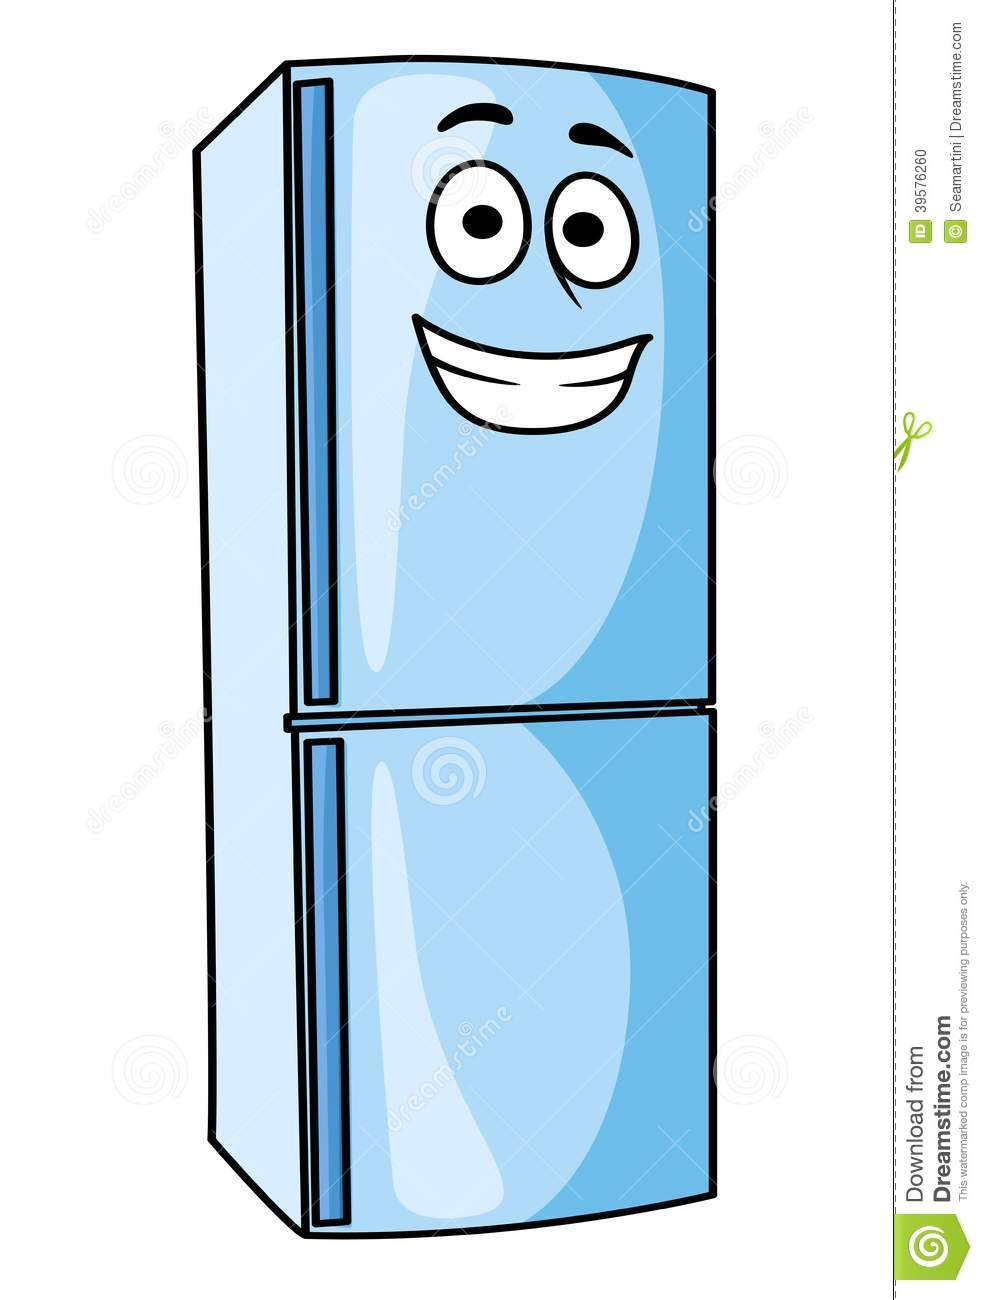 Stock Photo  Fridge Freezer Or Refrigerator Kitchen Appliance  Image